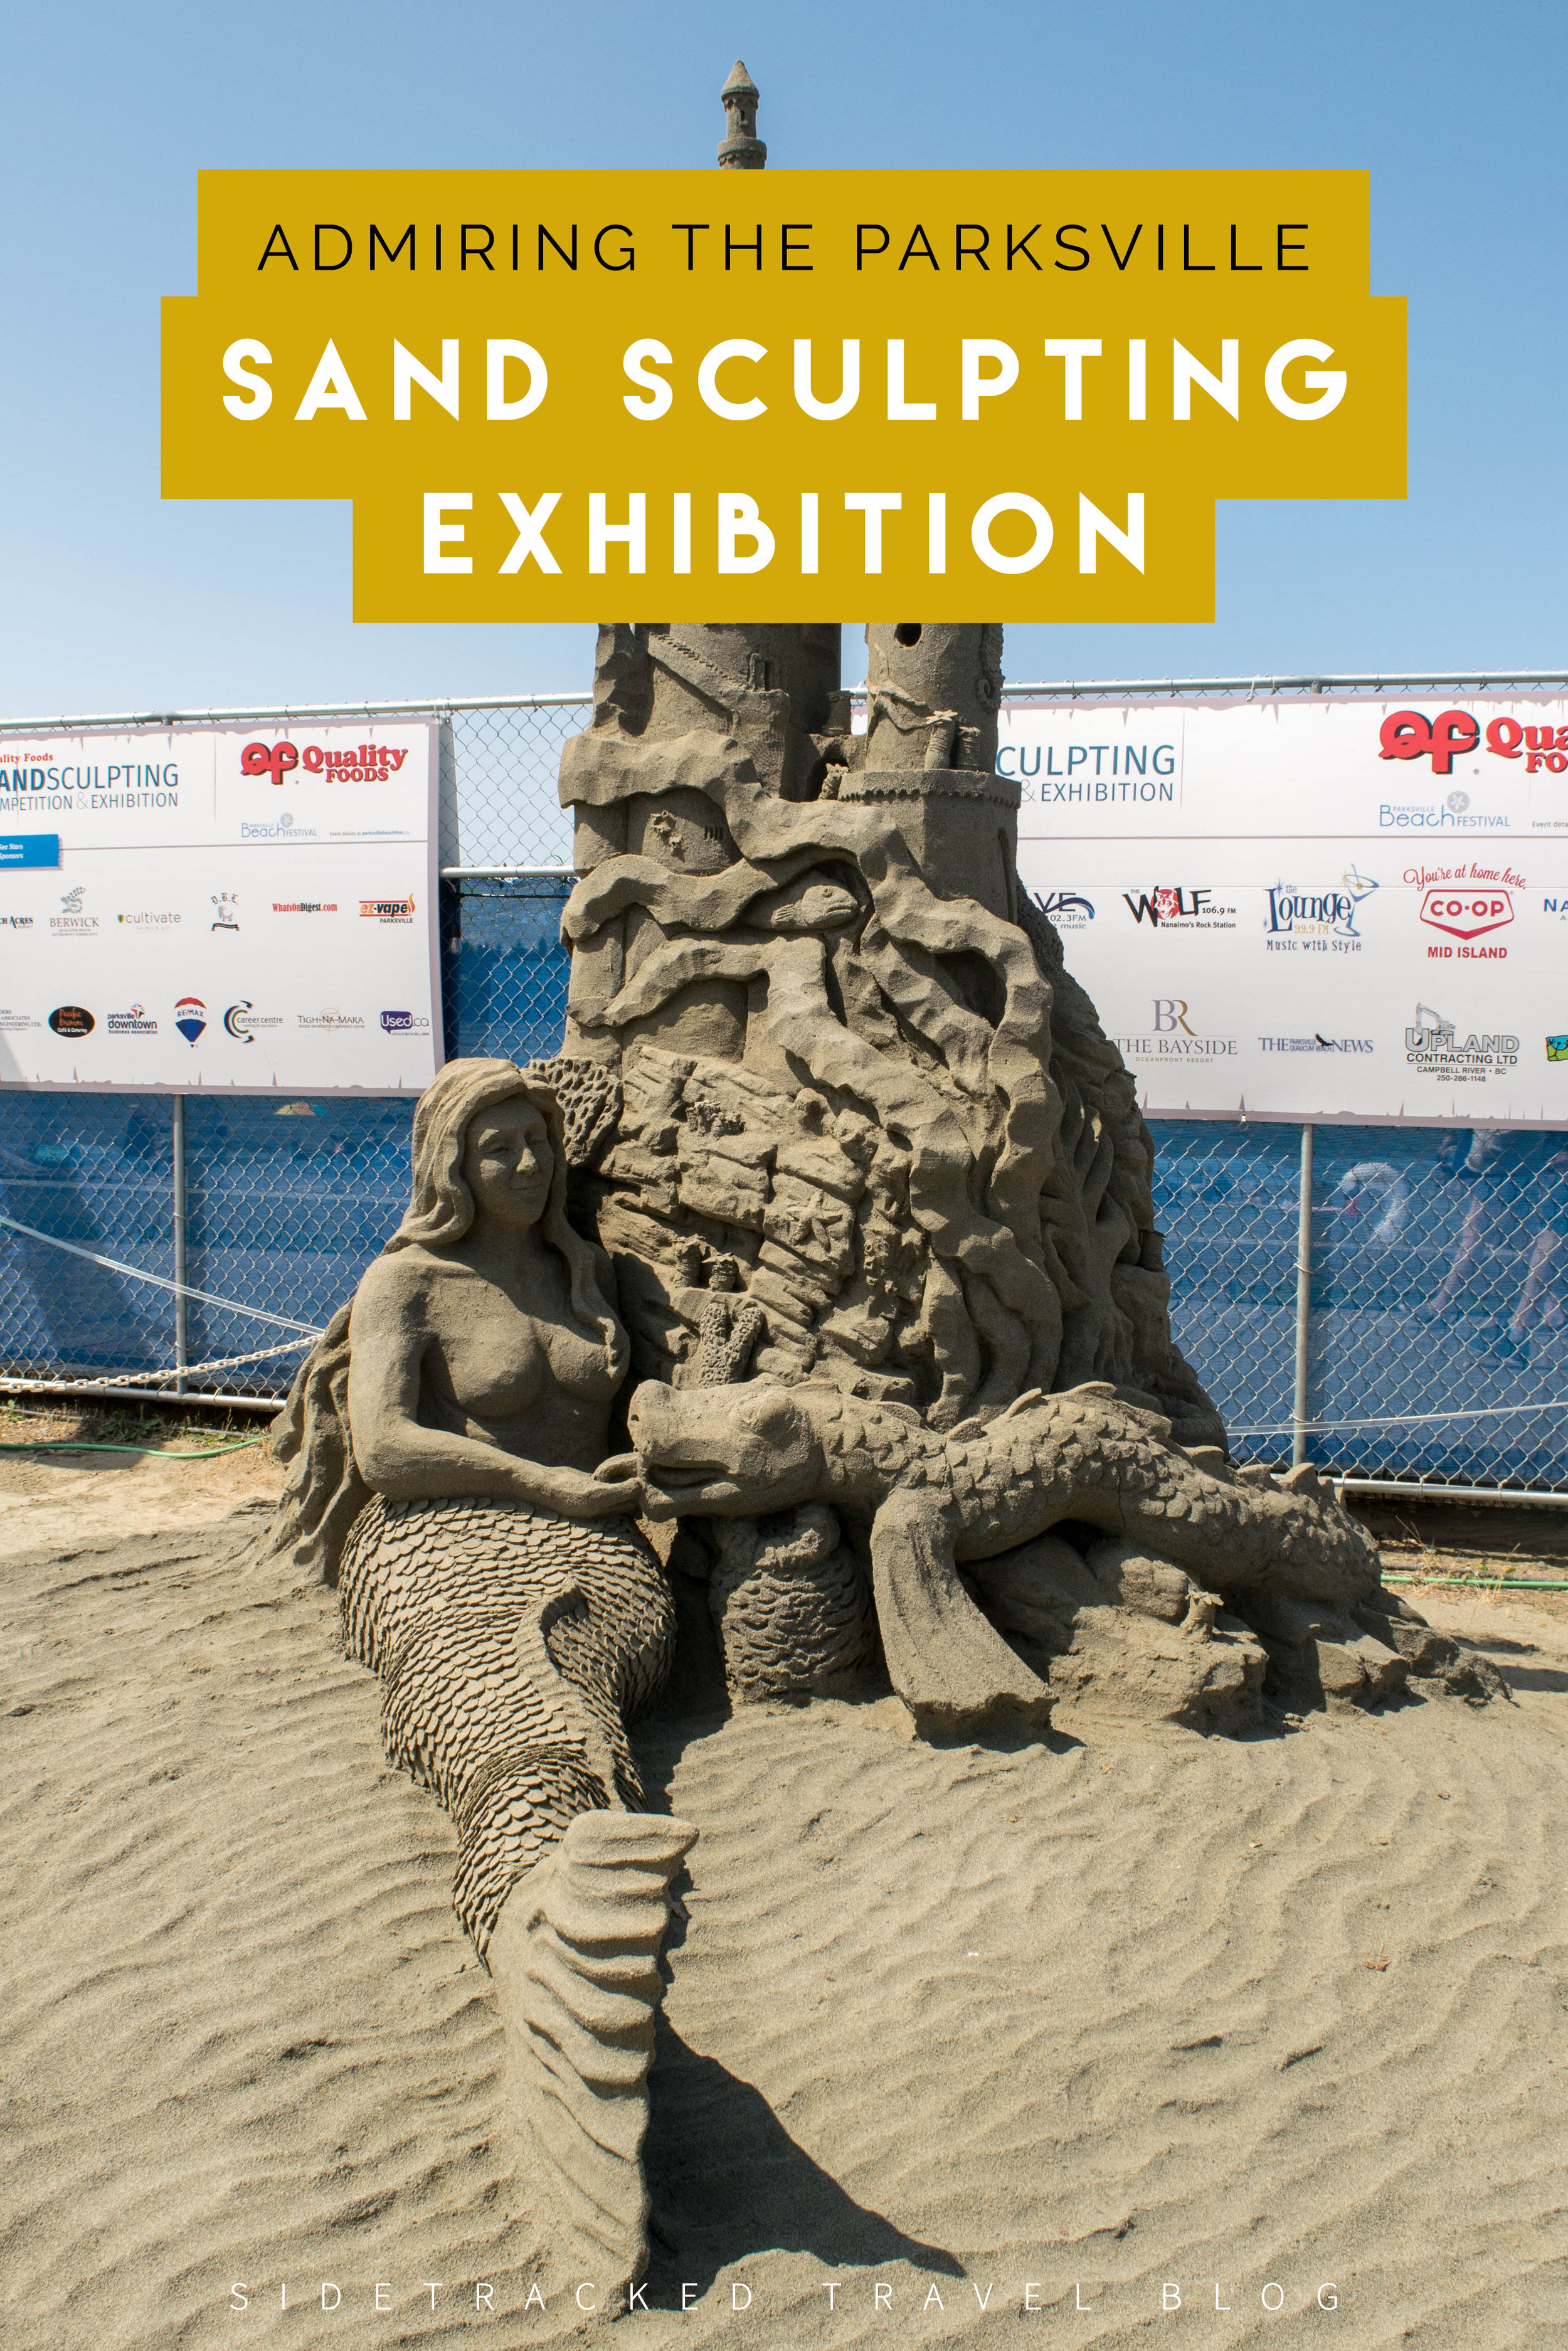 If you find yourself in the Parksville area, checking out this annual exhibition is a fun way to spend an hour and can easily be combined with a walk along the adjacent boardwalk or an afternoon spent beach-combing.